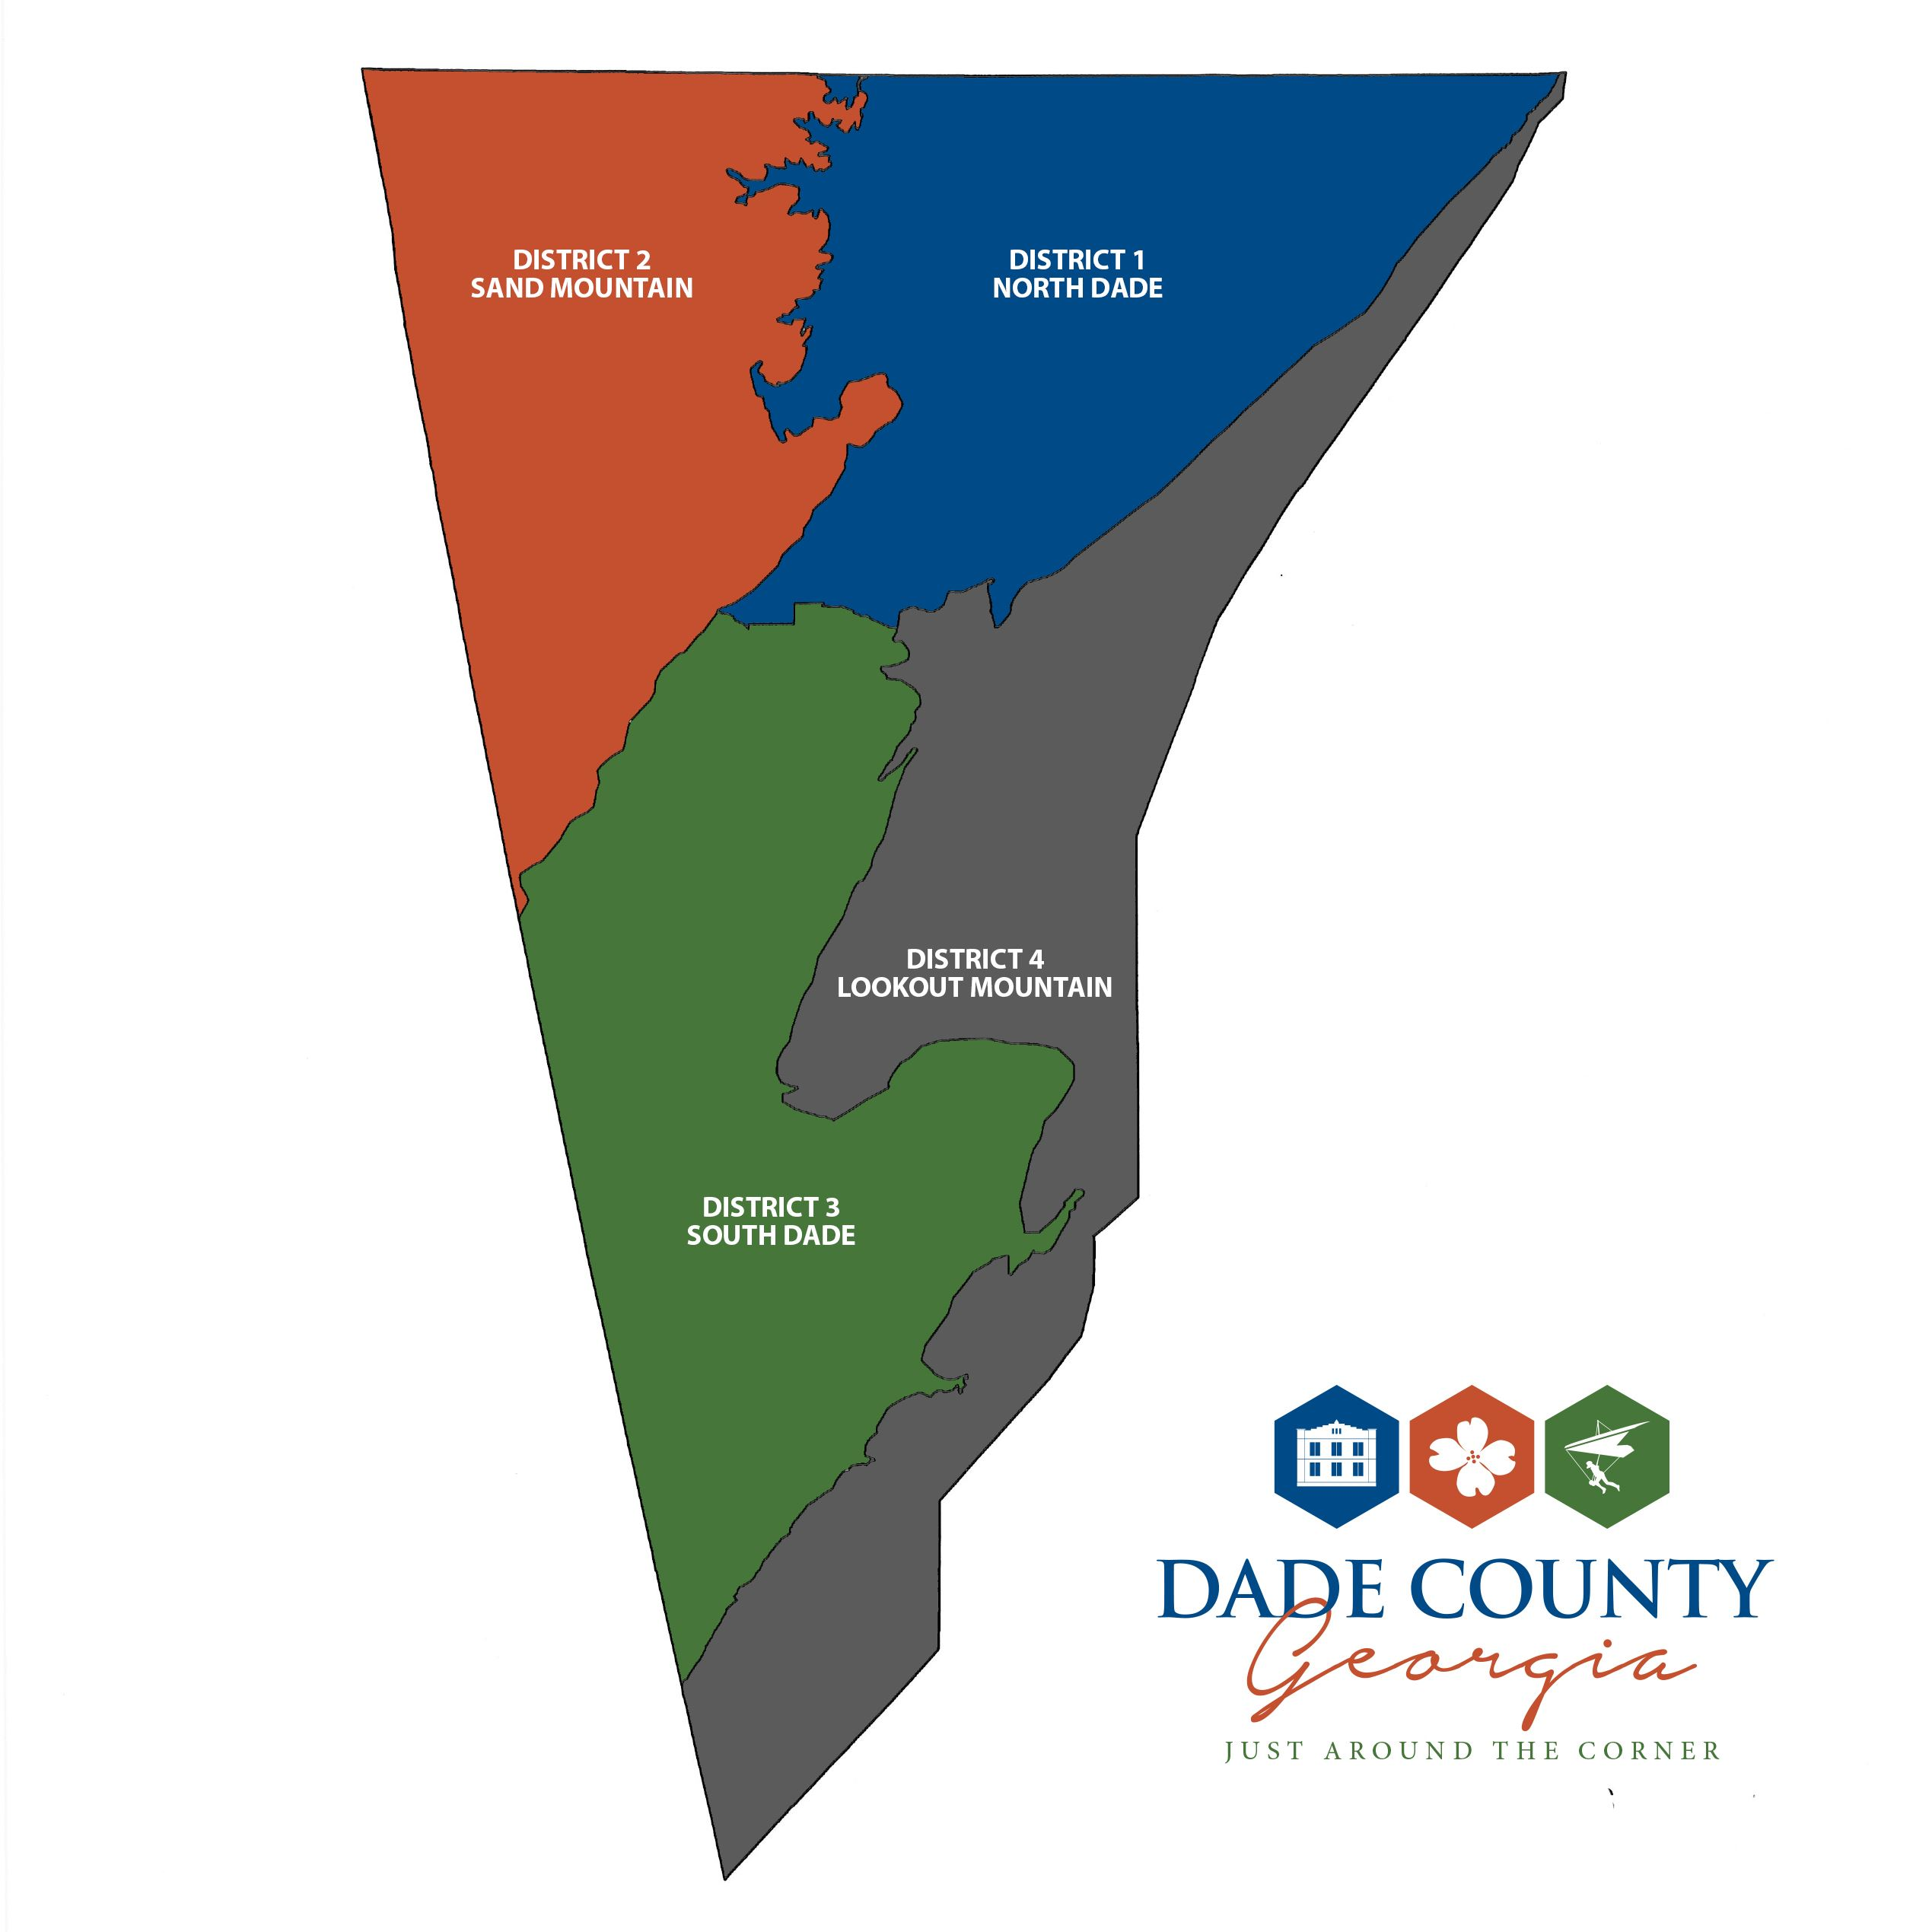 DADE COUNTY 2008- Districts